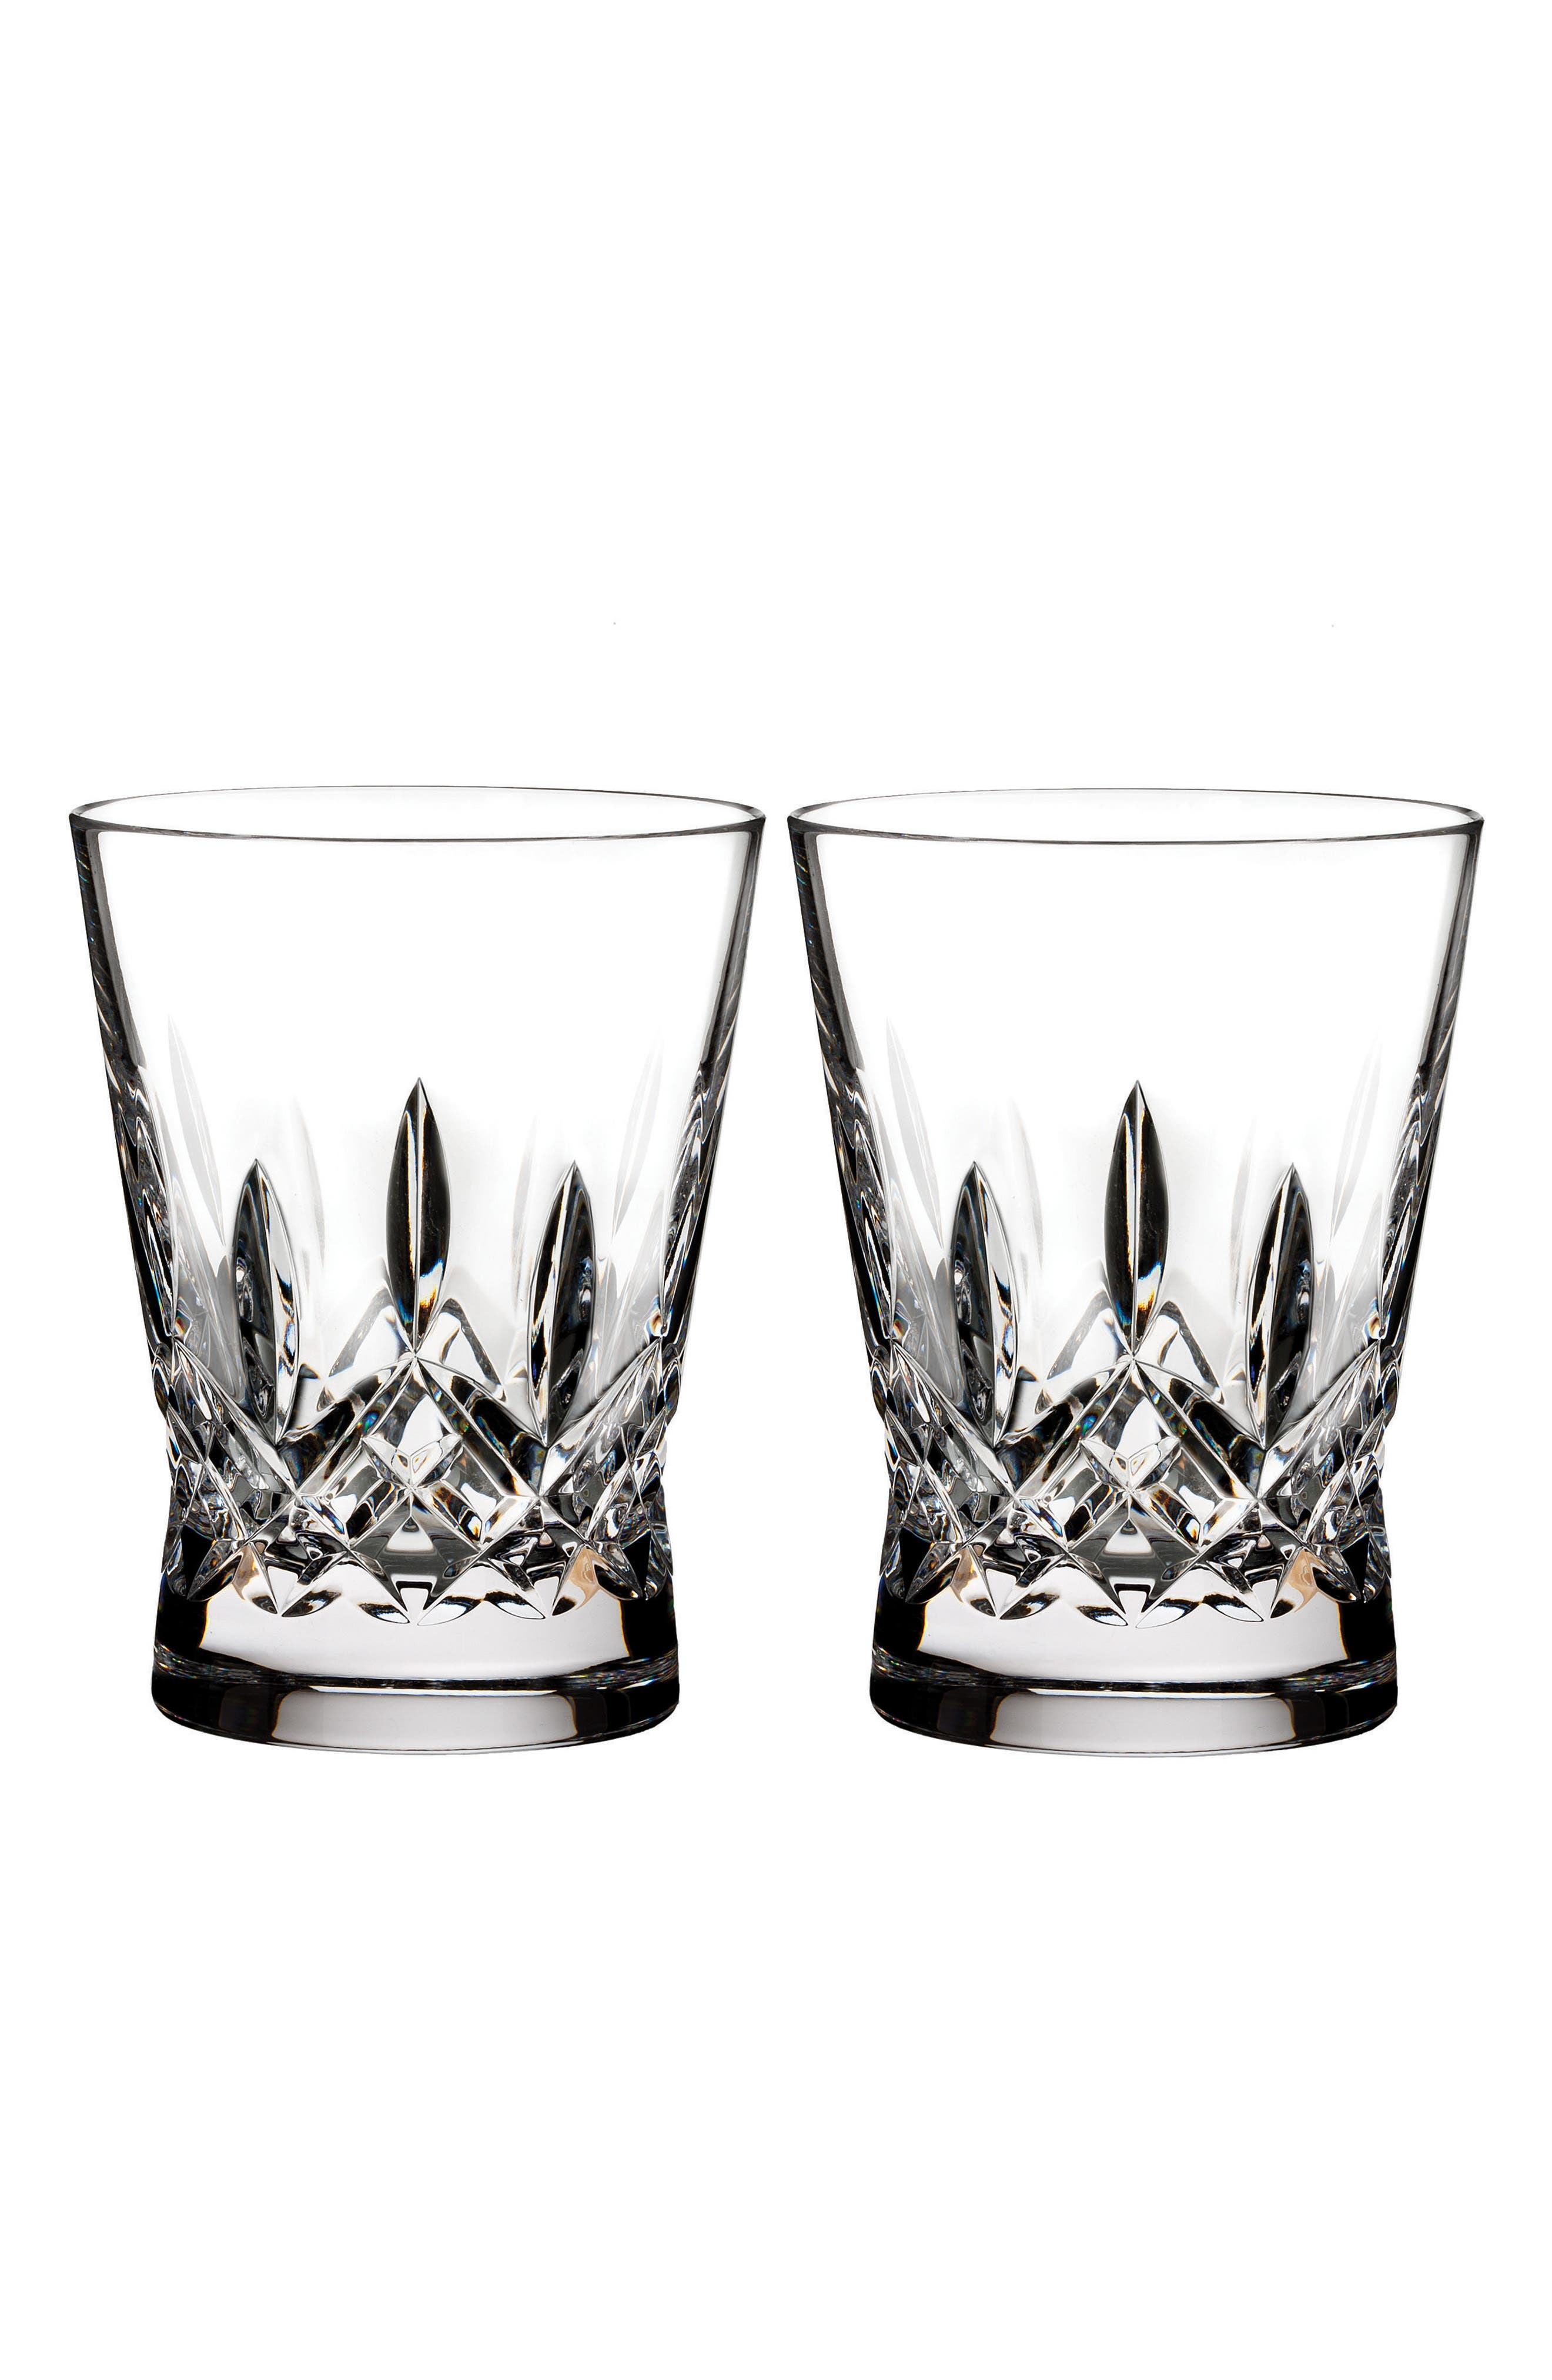 Alternate Image 1 Selected - Waterford Lismore Pops Set of 2 Lead Crystal Old Fashioned Glasses